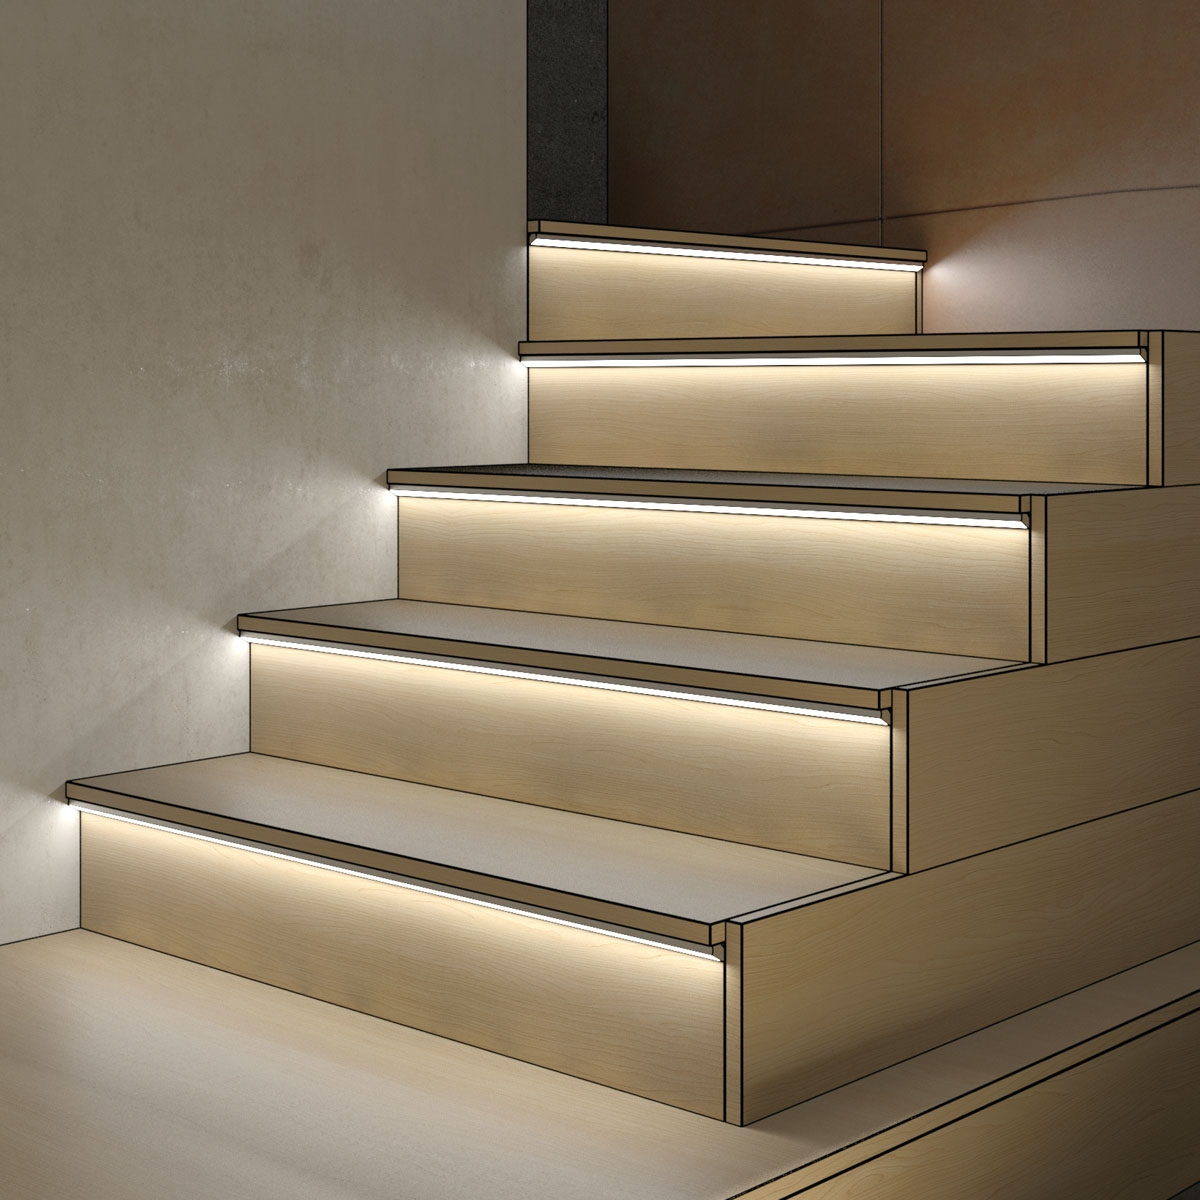 Using Tape And Channels Kichler Lighting | Reflective Tape For Outdoor Steps | Hazard Warning Tape | Yellow | Self Adhesive | Retro Reflective | Concrete Steps